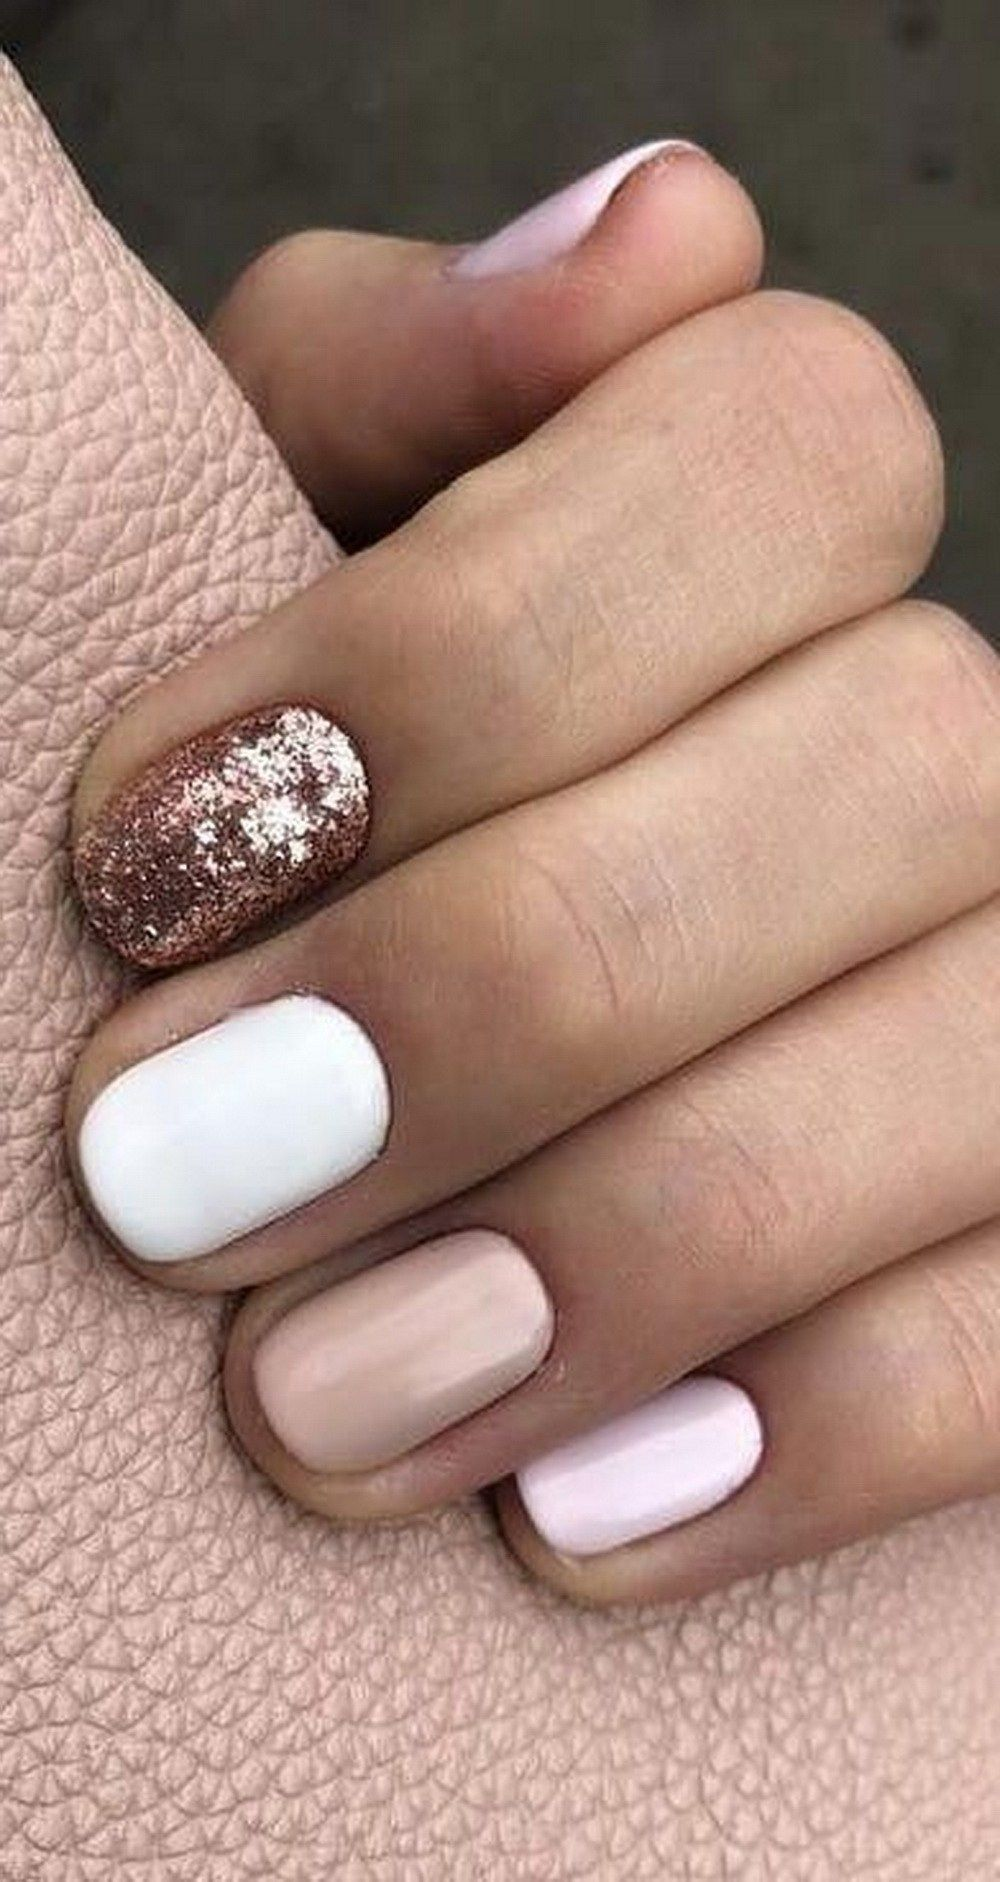 25 Amazing Short Nail Art Designs for Winter to Spring - Explore Dream Discover Blog